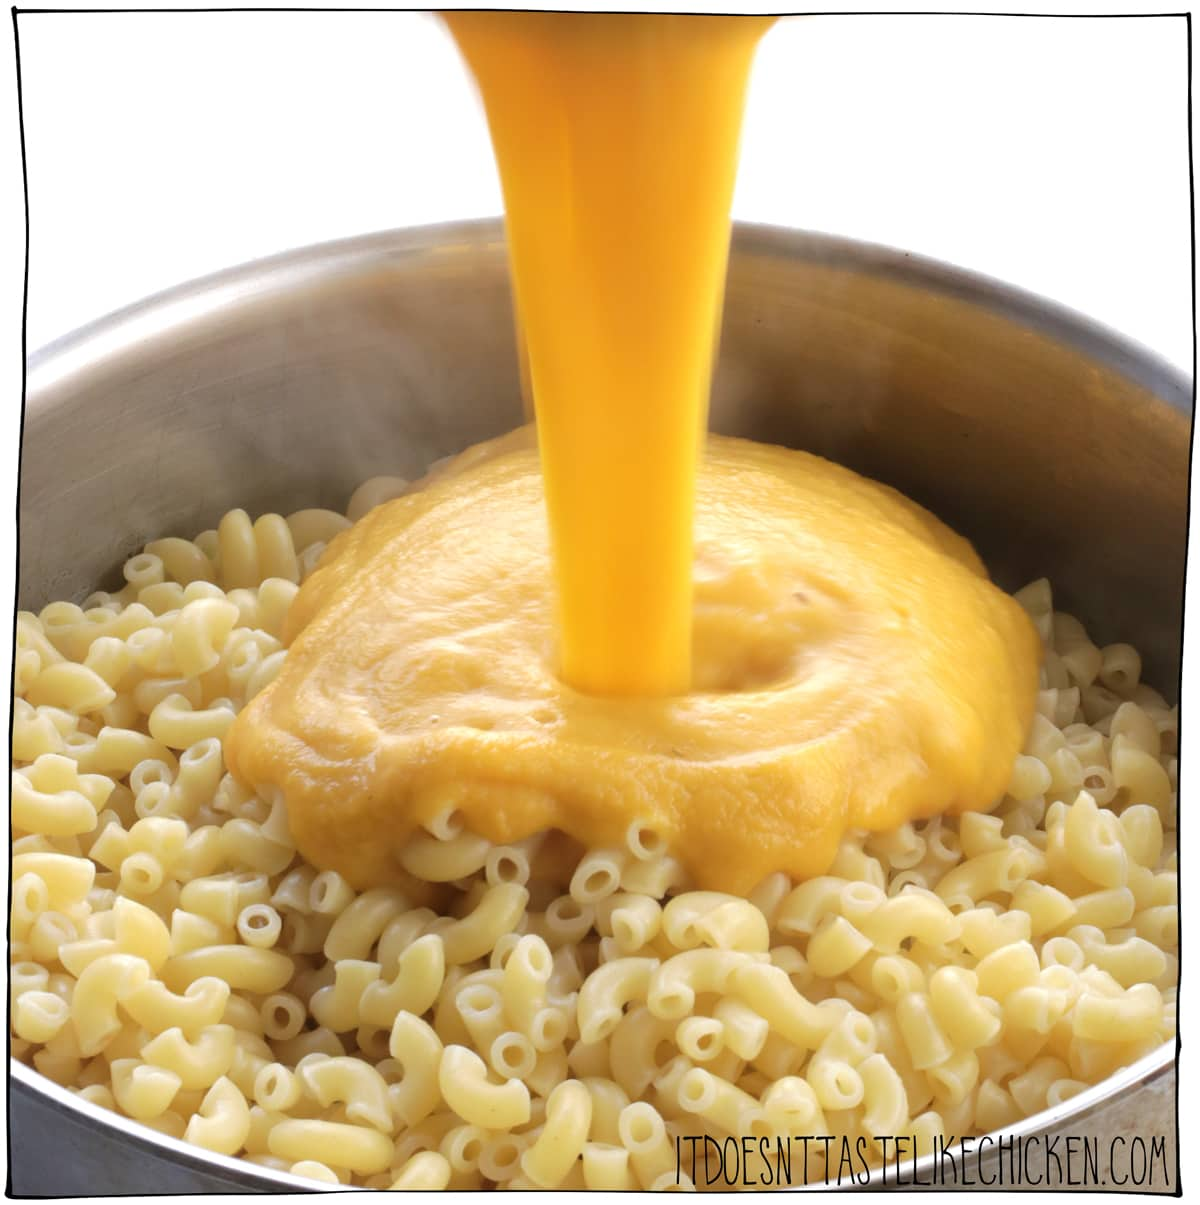 Toss with the cooked macaroni.